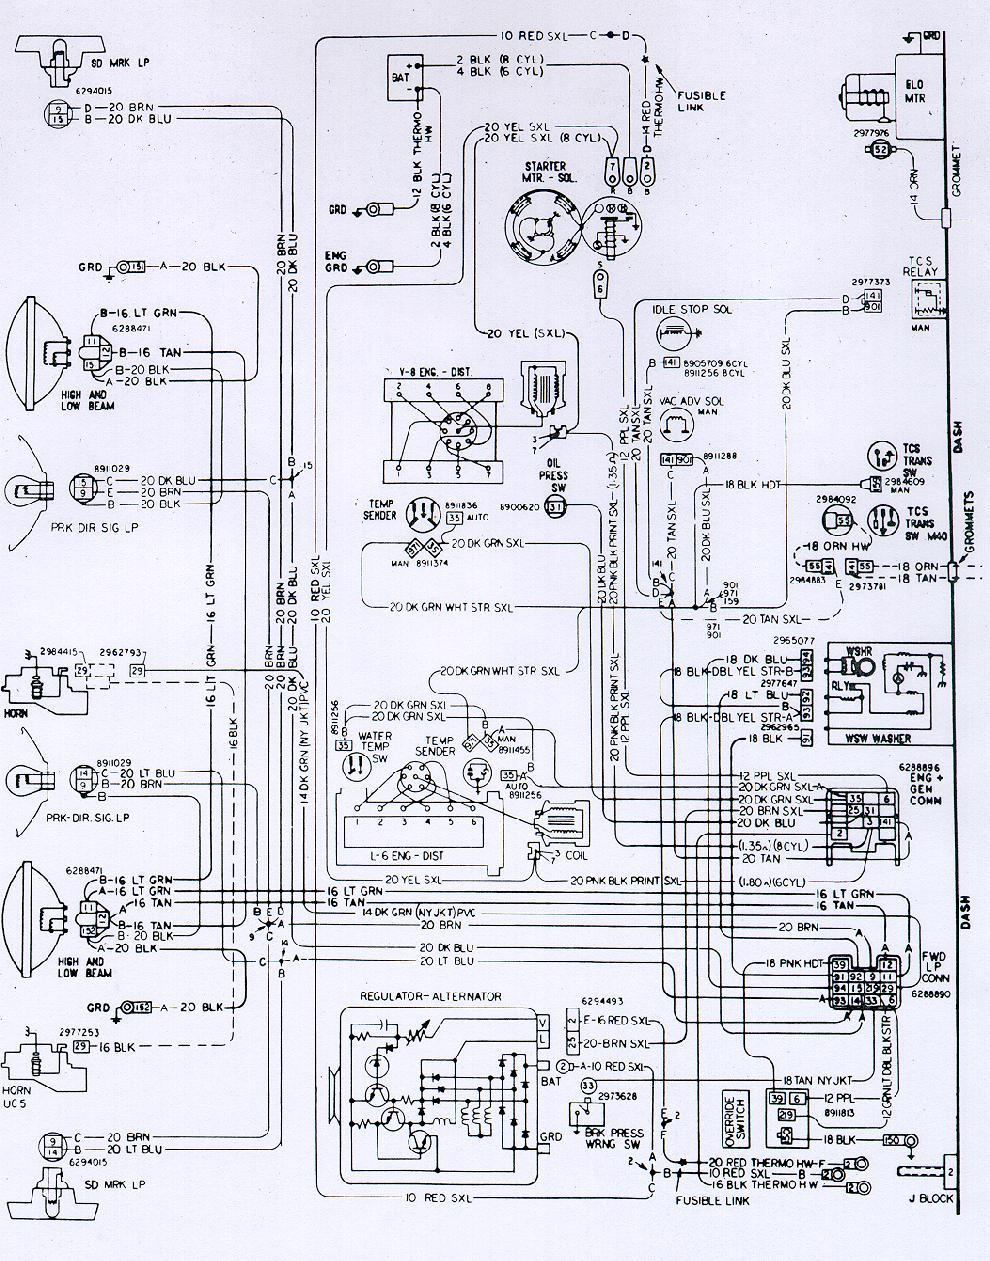 hight resolution of 1972 camaro wiring diagram electrical diagrams schematics 1972 corvette fuse box 1971 camaro fuse box diagram